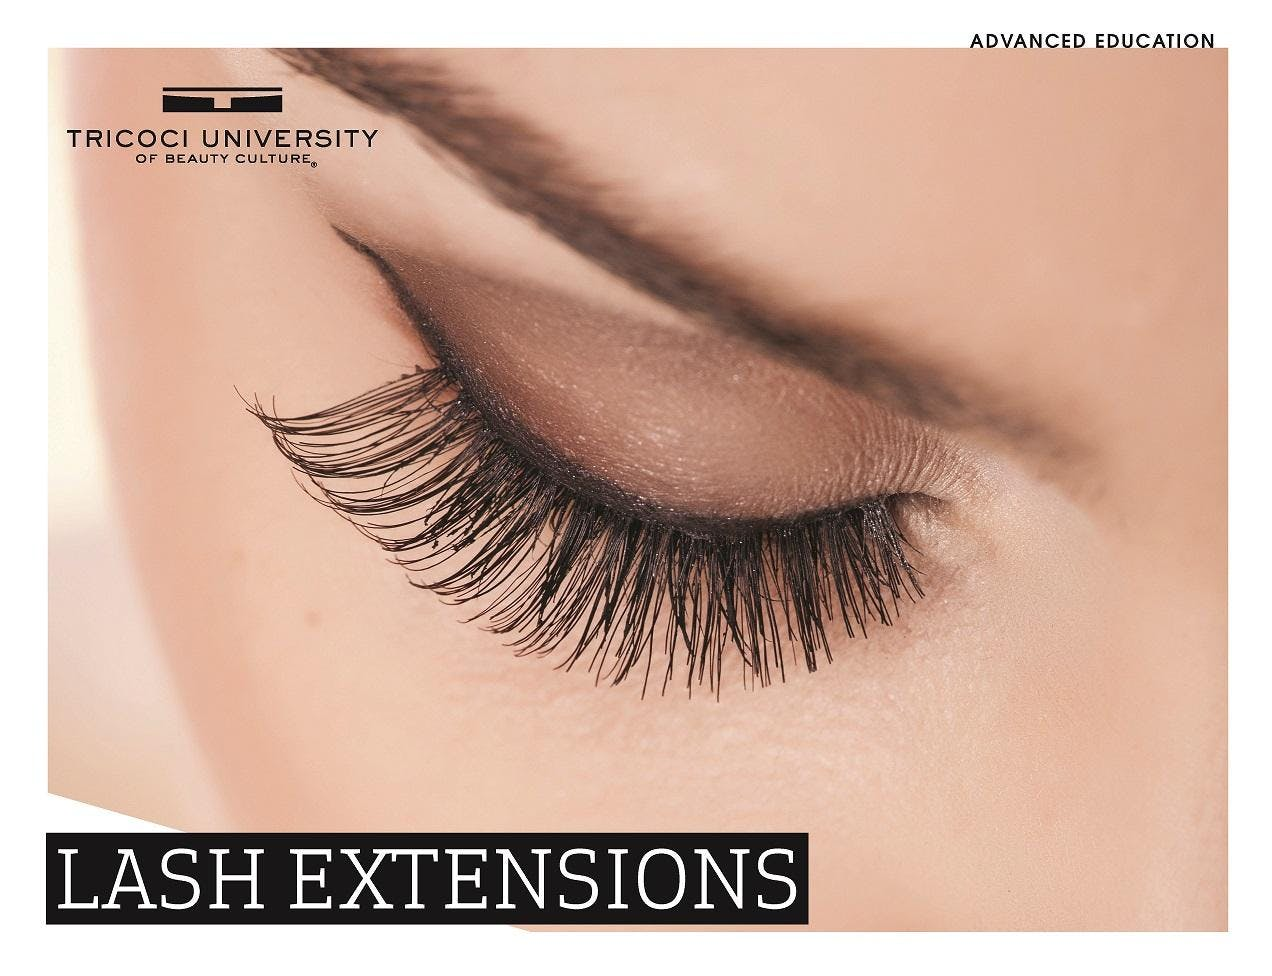 Eyelash Perming Events In The City Top Upcoming Events For Eyelash